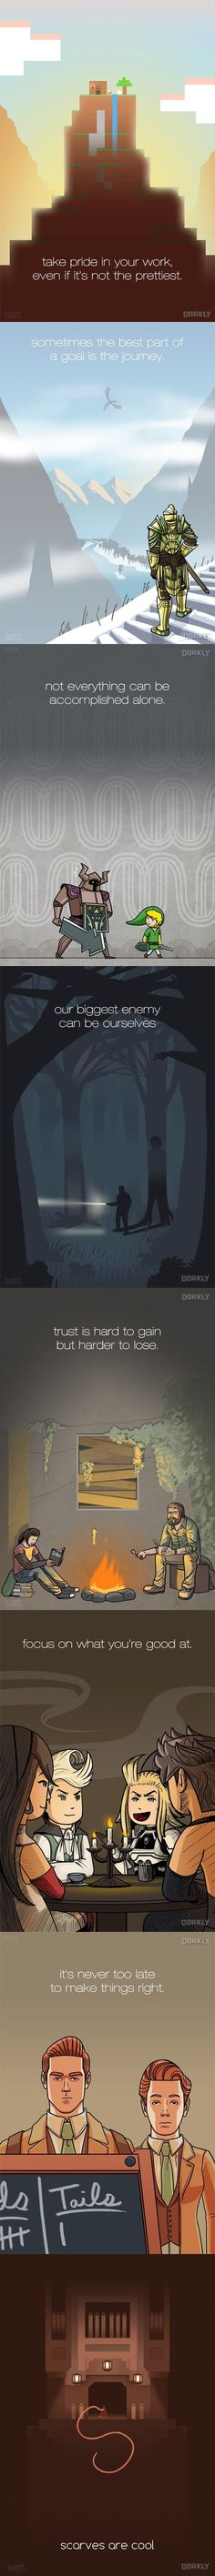 Video Game Life Lessons